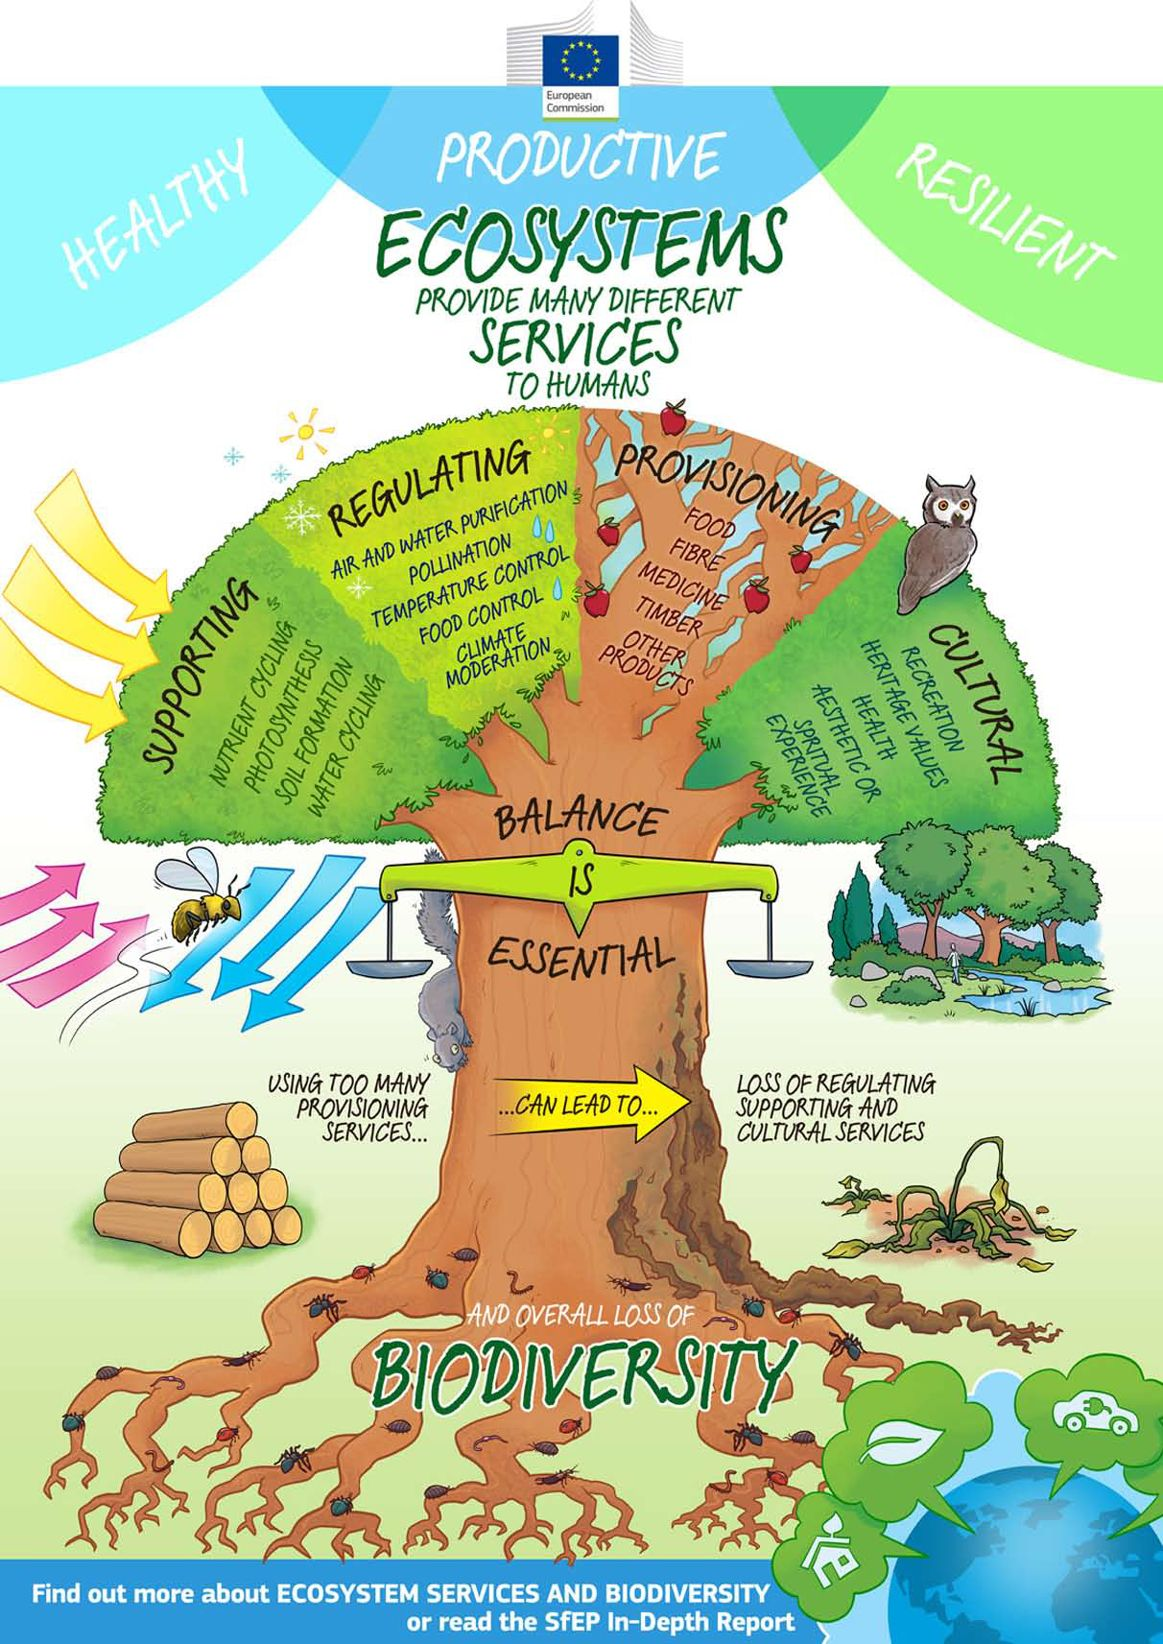 infographic showing how ecosystems provide many different services to humans and how using too many provisioning services such as food, fibres, medicine and timber, can lead to loss of regulating supporting and cultural services and overall loss of biodiversity.